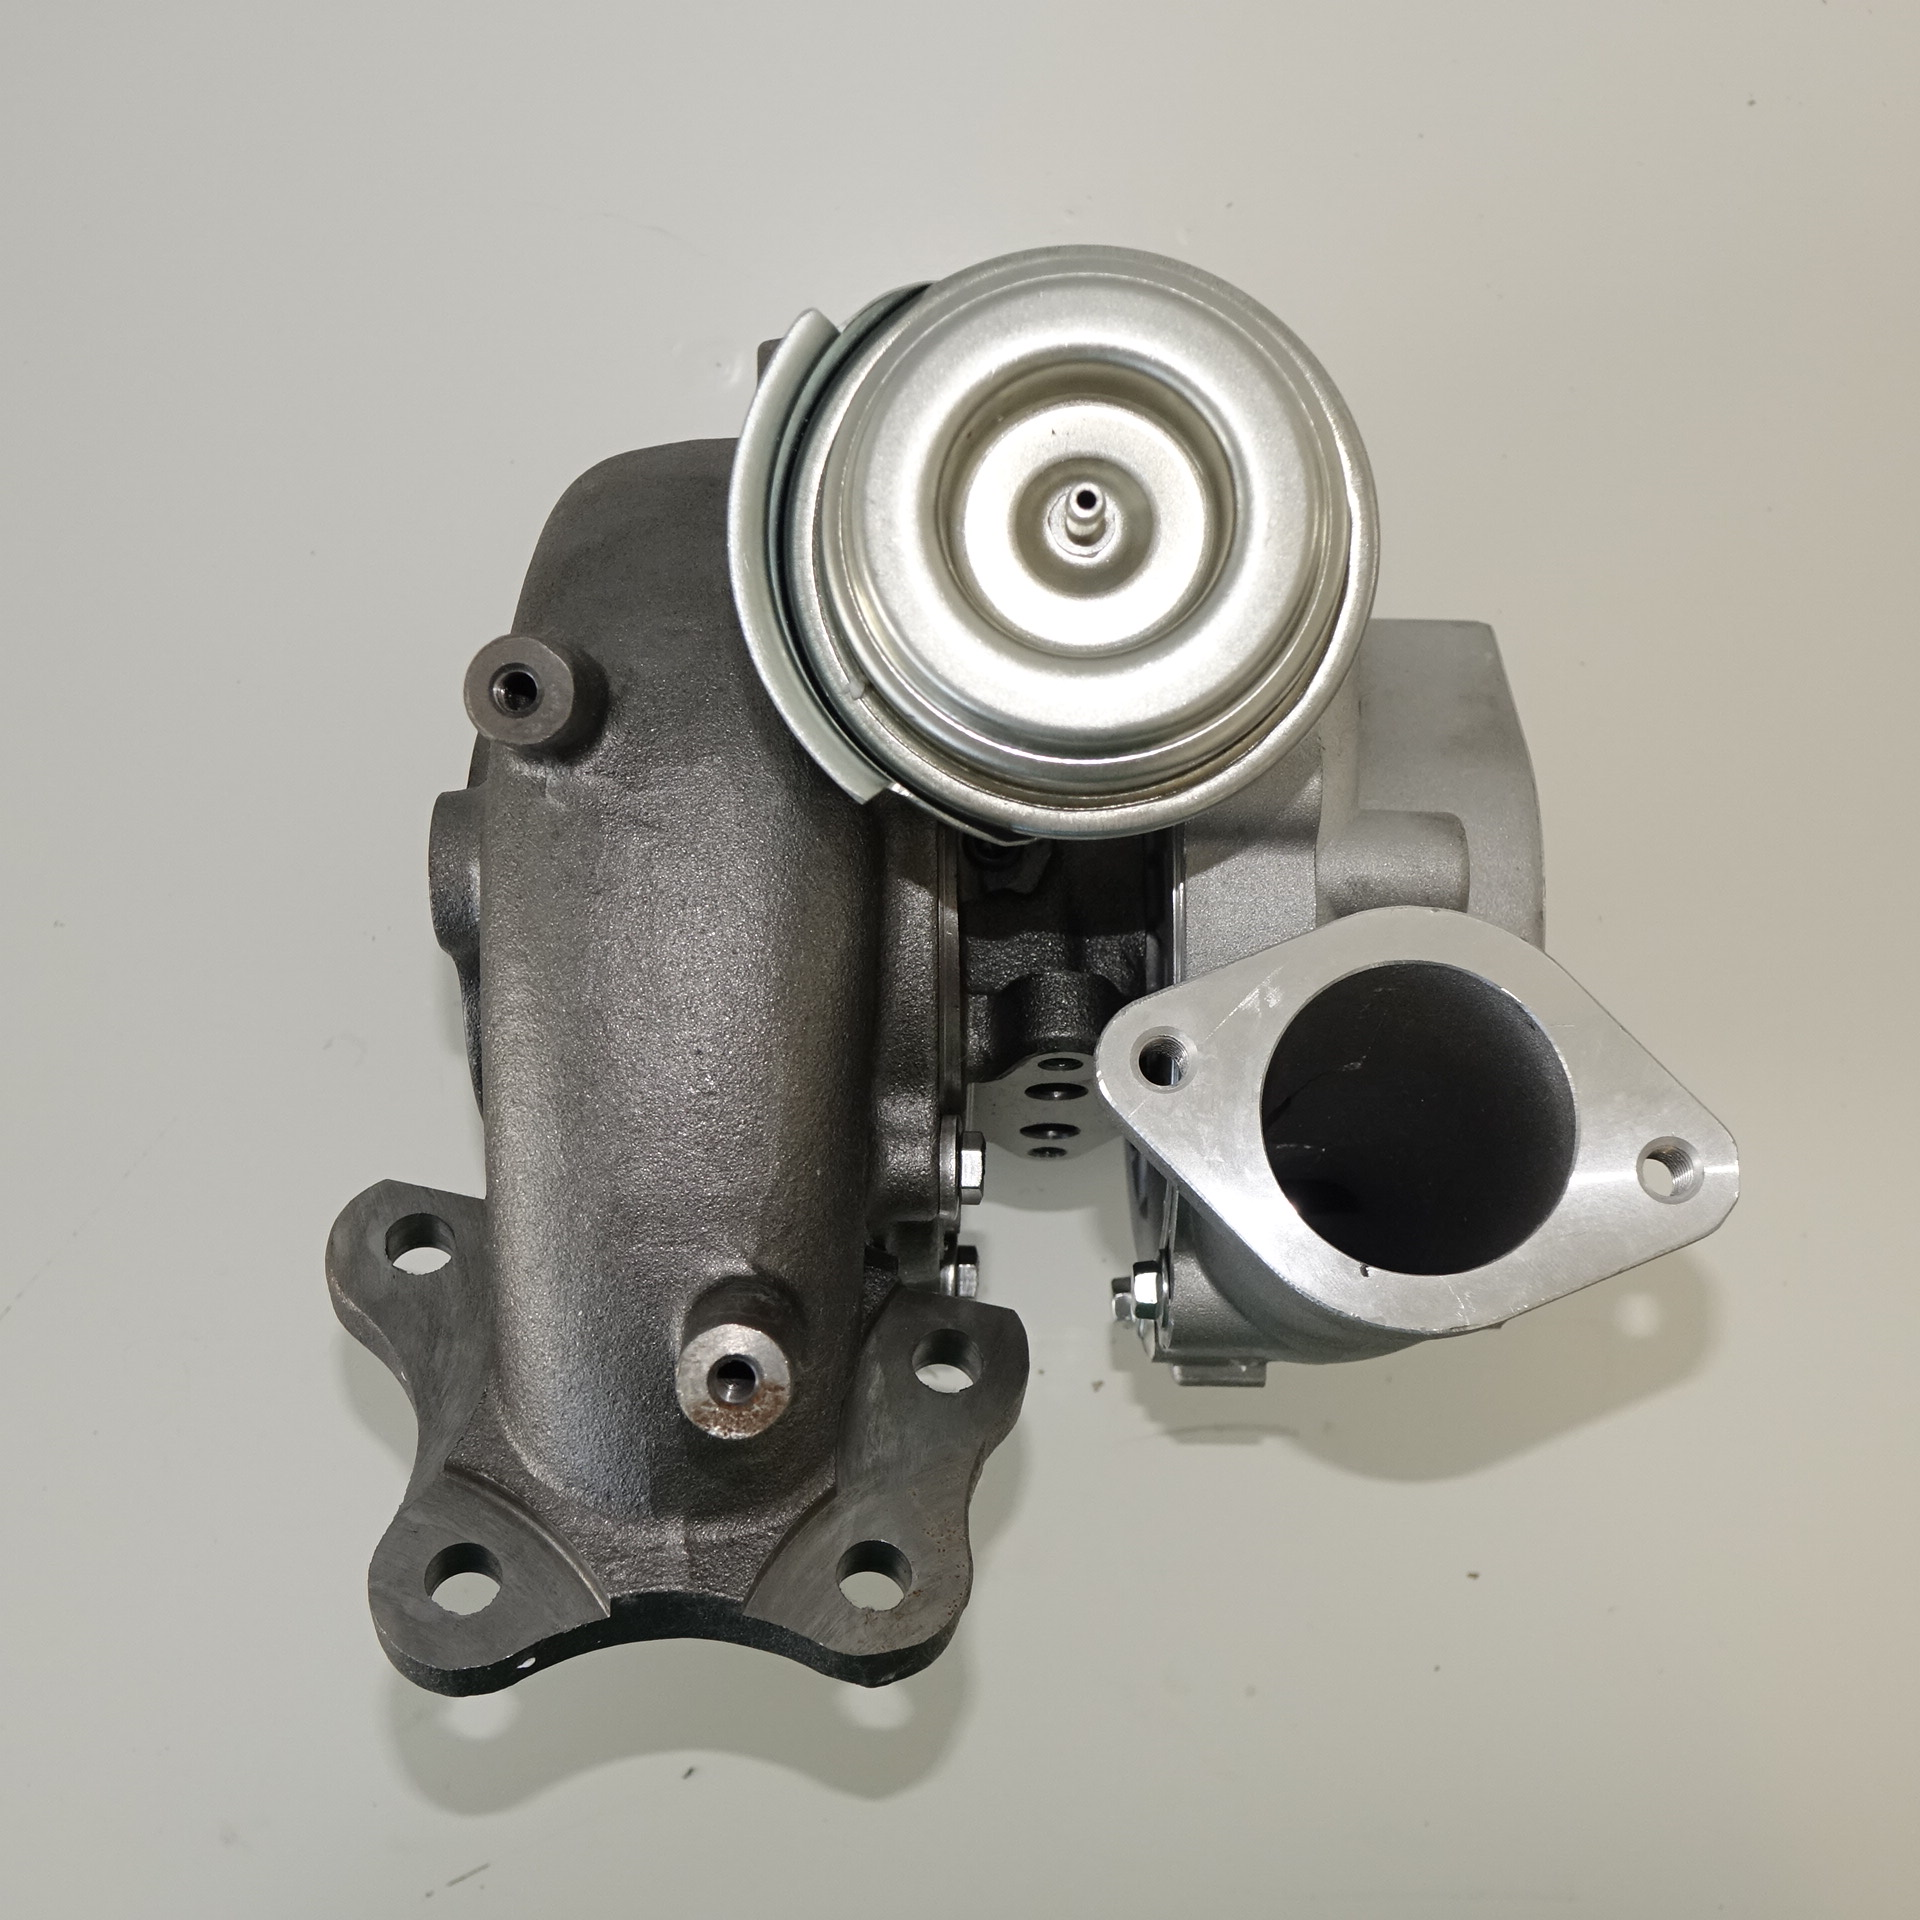 nissan-navarra-d40-turbocharger-gt2056v-7720-compressor-turbine